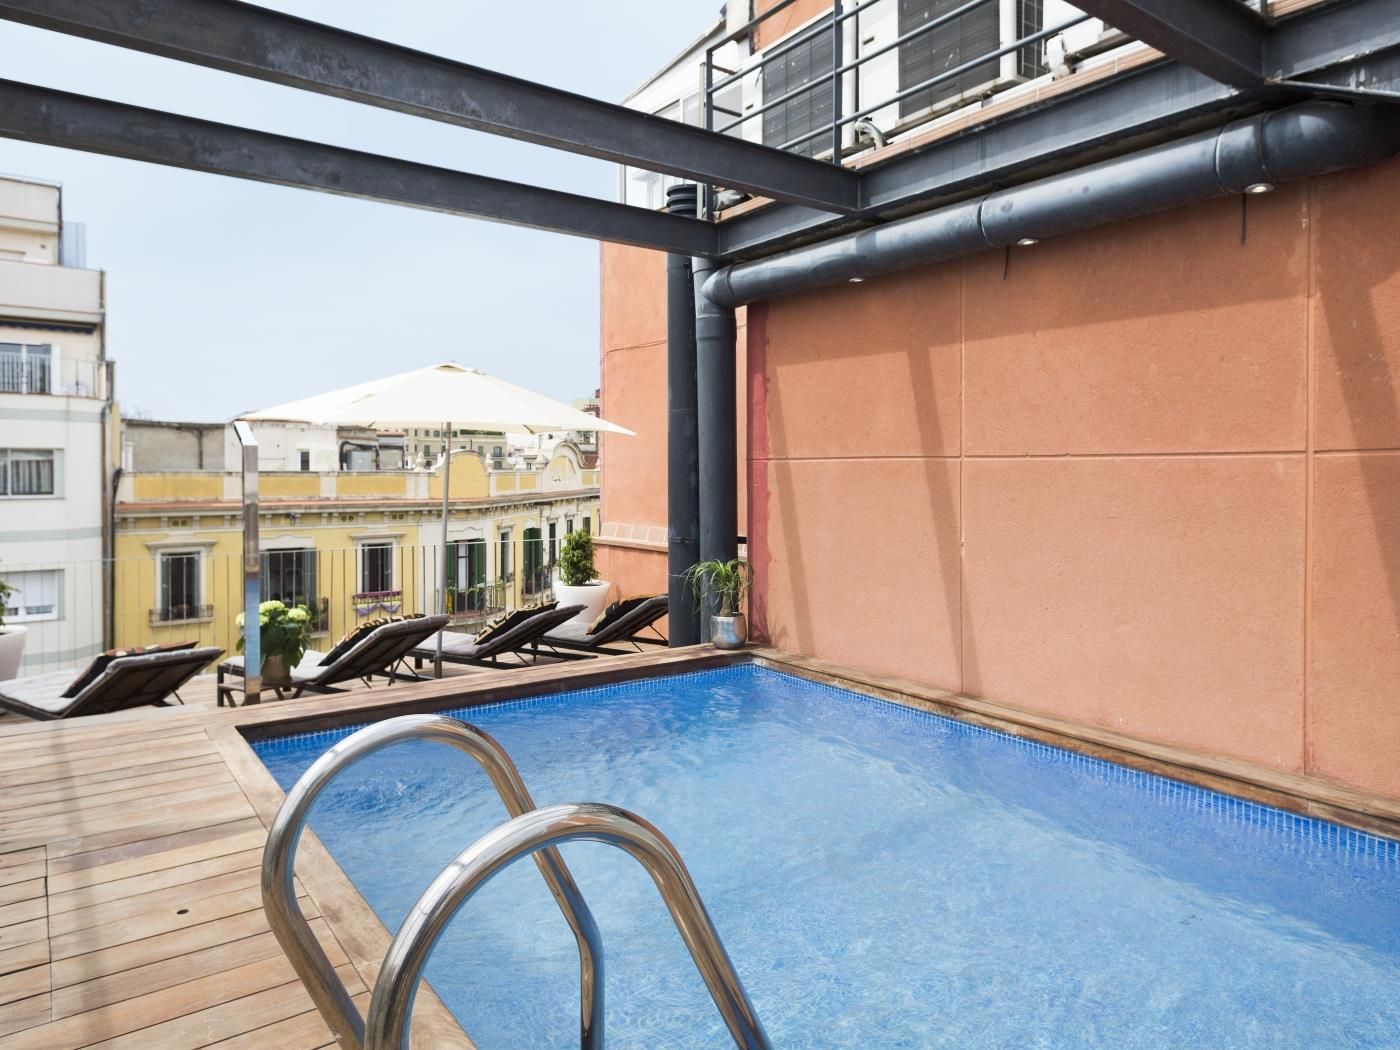 Room in Eixample ideal for students in building with terrace and swimming pool - My Space Barcelona Apartments